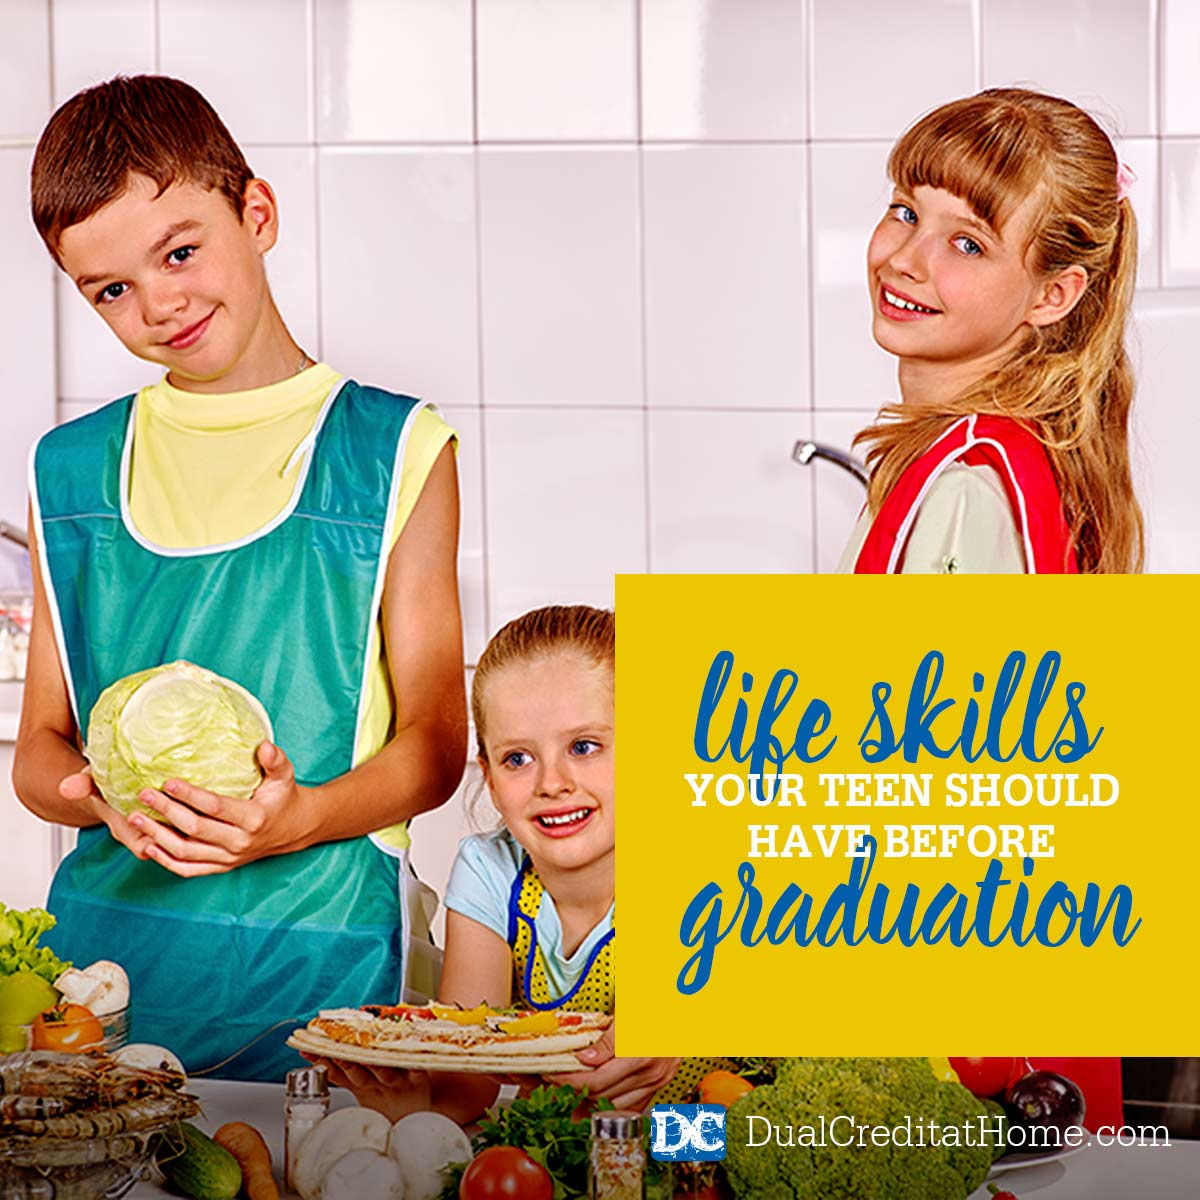 Life Skills Your Teen Should Have Before Graduation